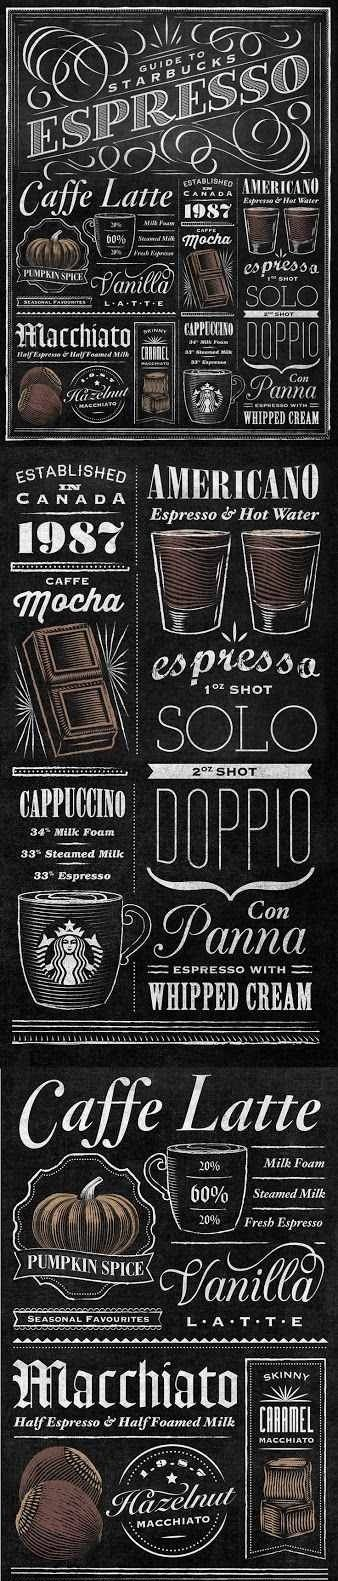 Coffee-ology Love this, but it's coffee, no its typography - its both! knowyourgrinder.com #coffee #coffelove #infographics